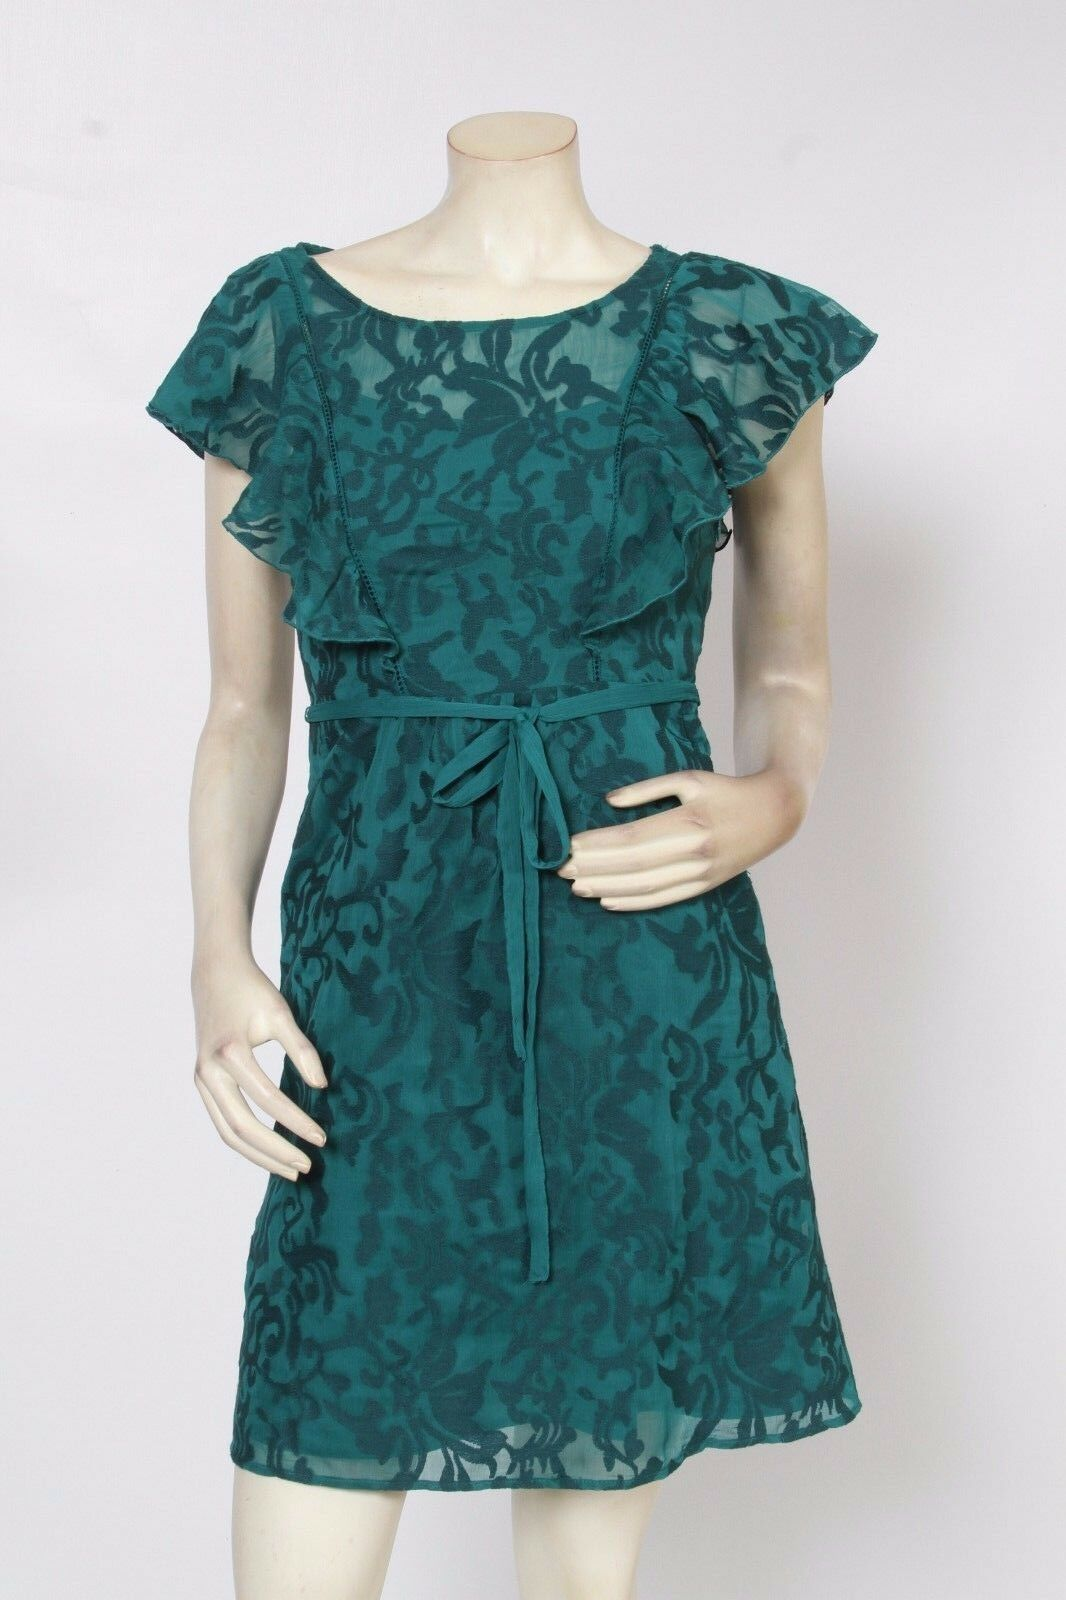 MOULINETTE SOEURS Anthropologie FLUTTERED SCROLLWORK Green Dress